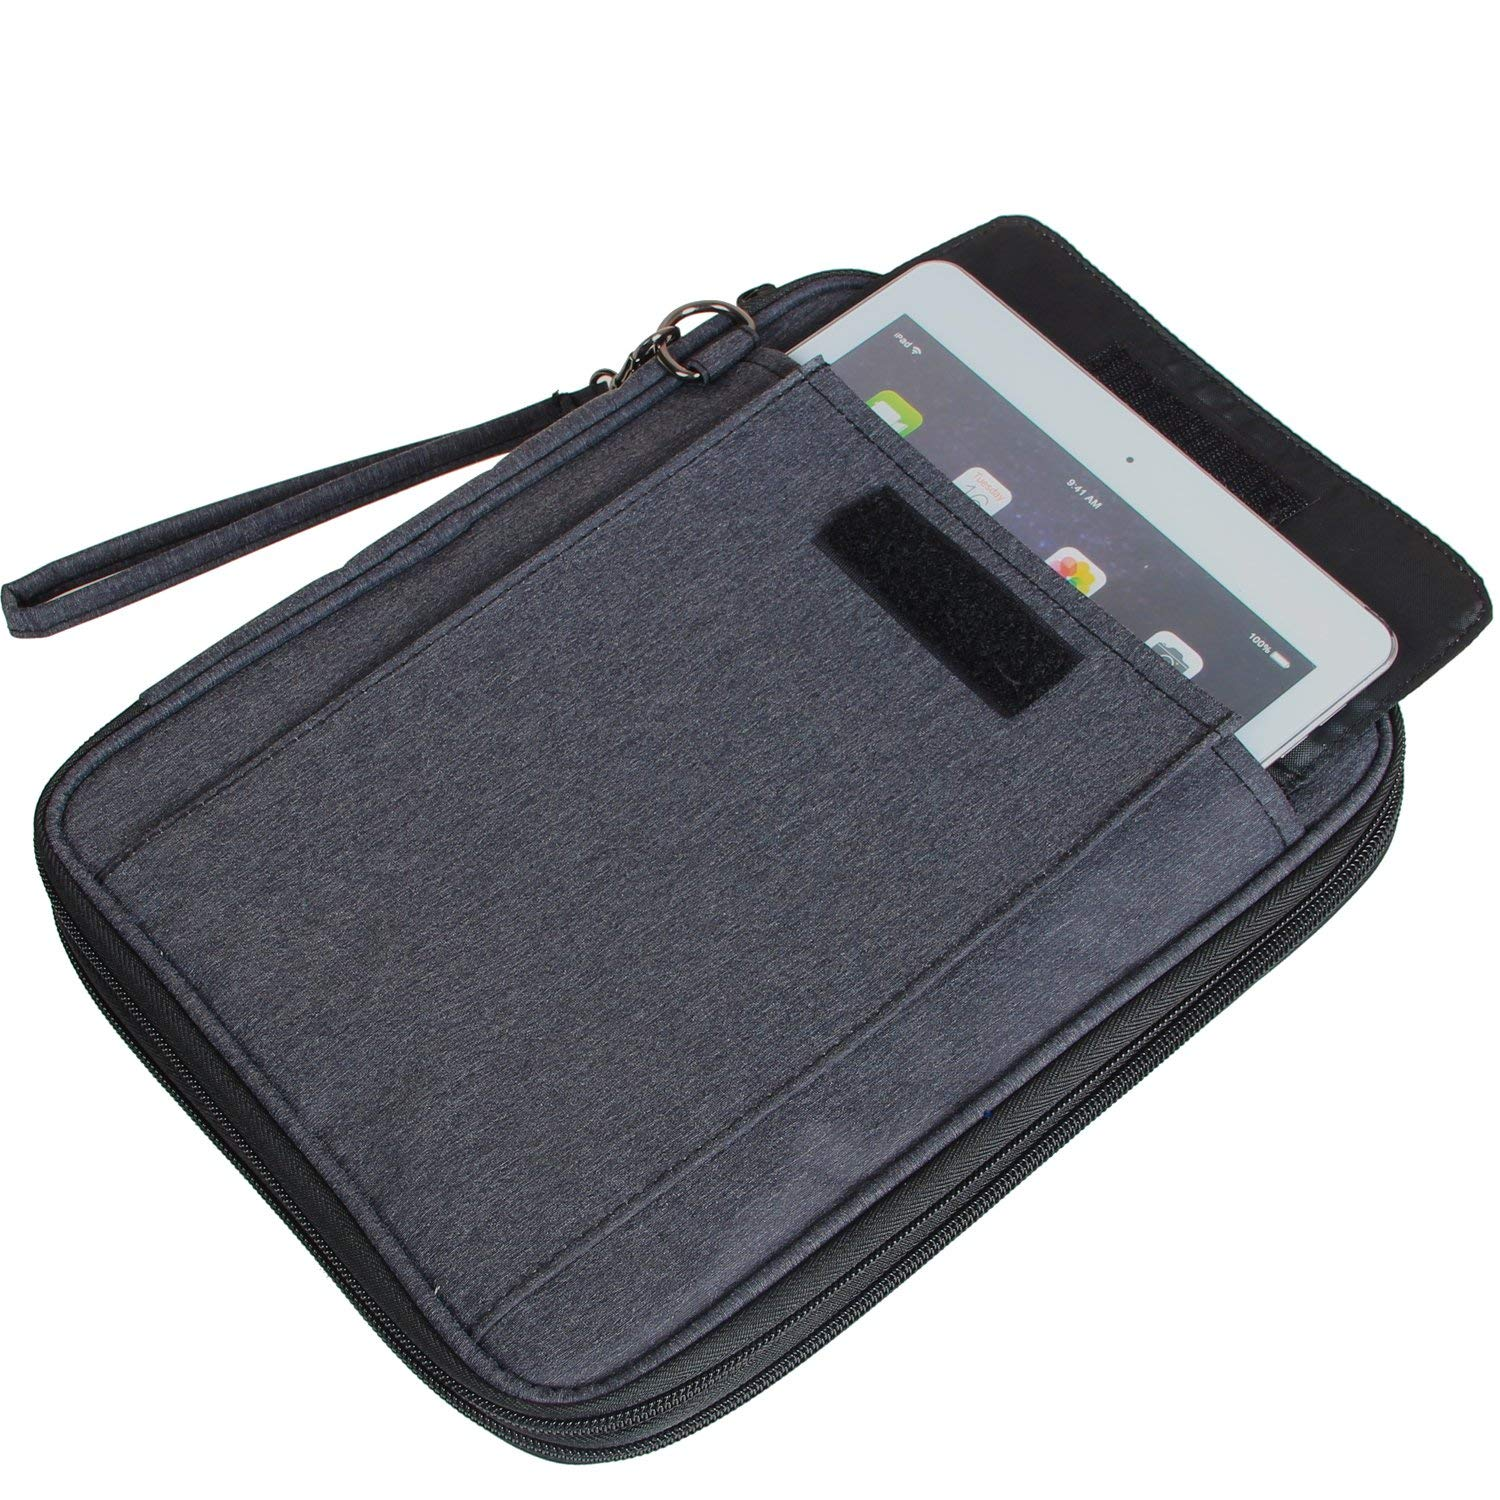 Damero Electronics Organizer with 9.7 iPad Sleeve Case// Travel Accessories Bag for Passport Business Cards /& Document Case Black